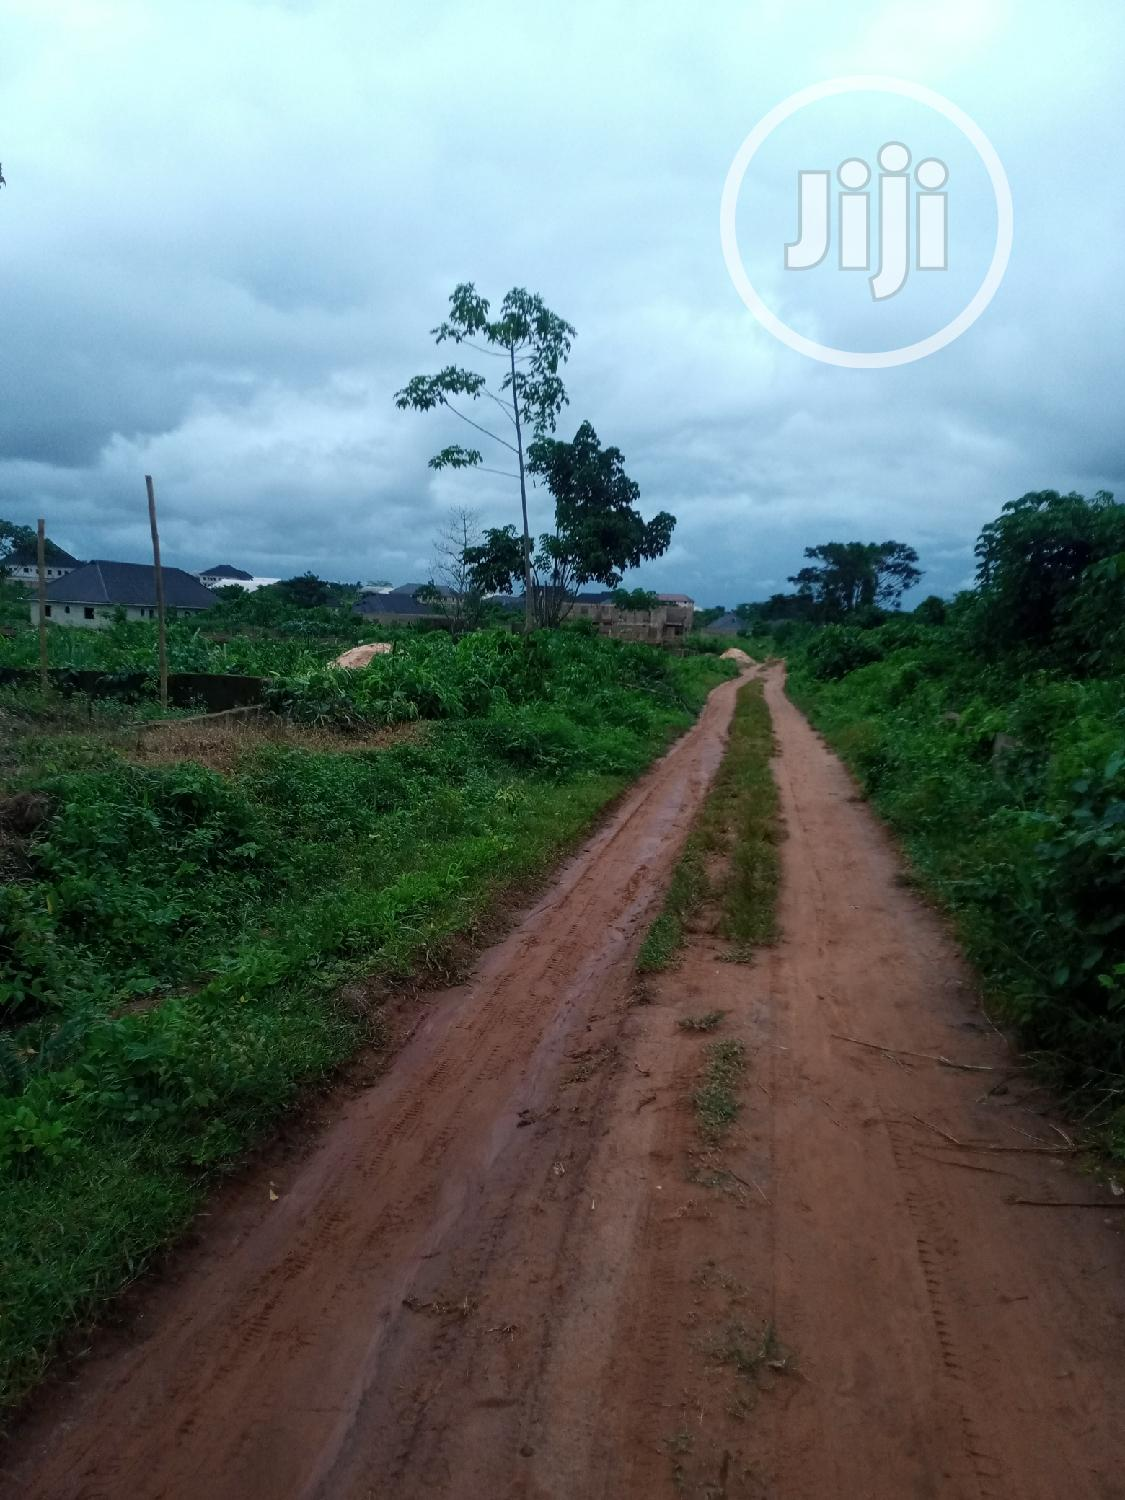 Distress Sale Of A Plot Land Situate At Amagba, GRA, Benin | Land & Plots For Sale for sale in Benin City, Edo State, Nigeria